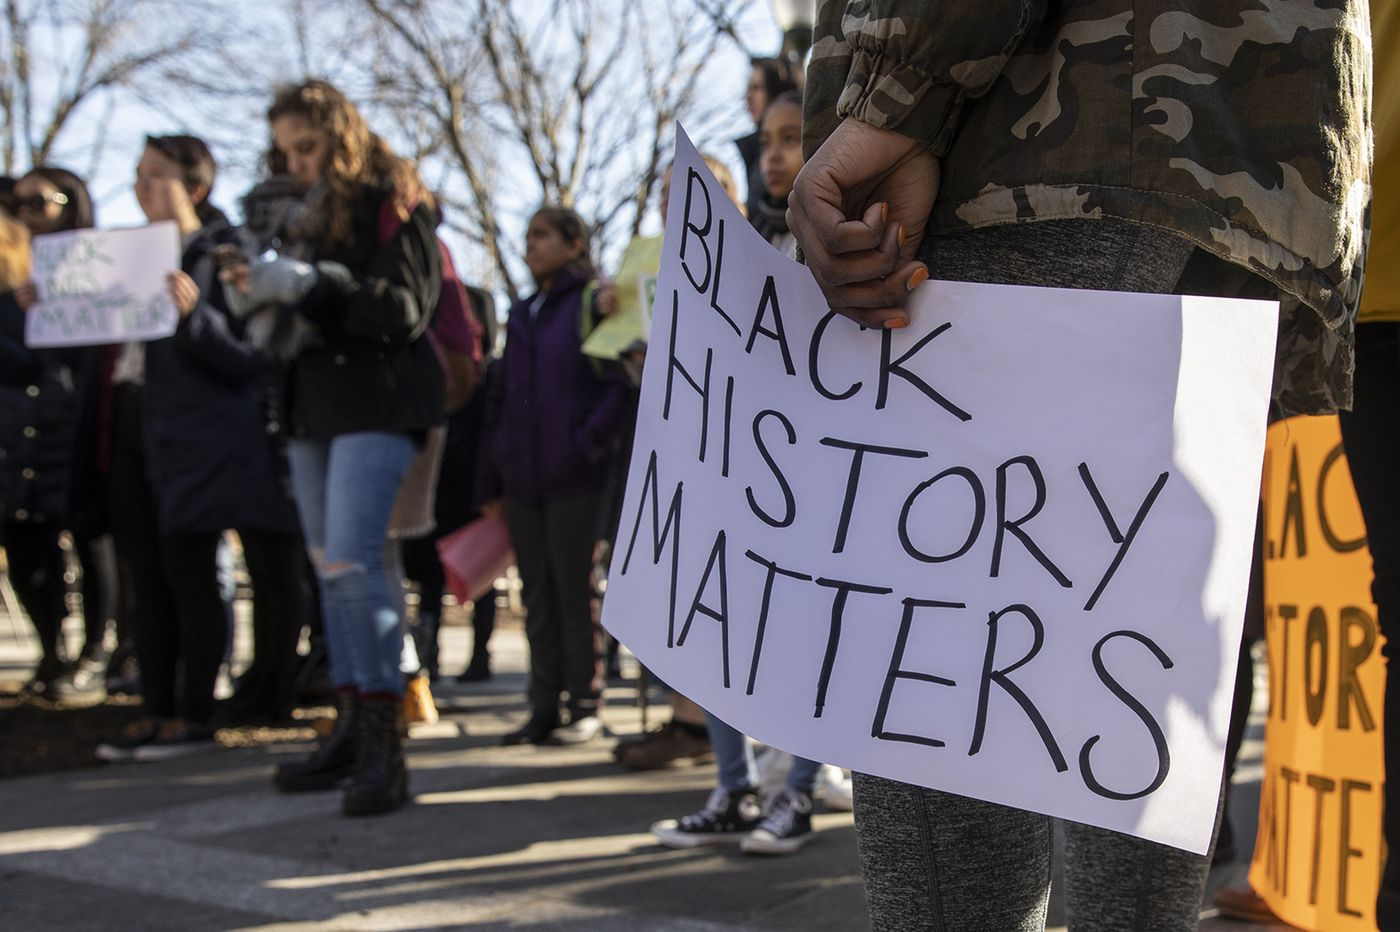 Penn students join dining-hall workers to condemn lack of Black History Month observance